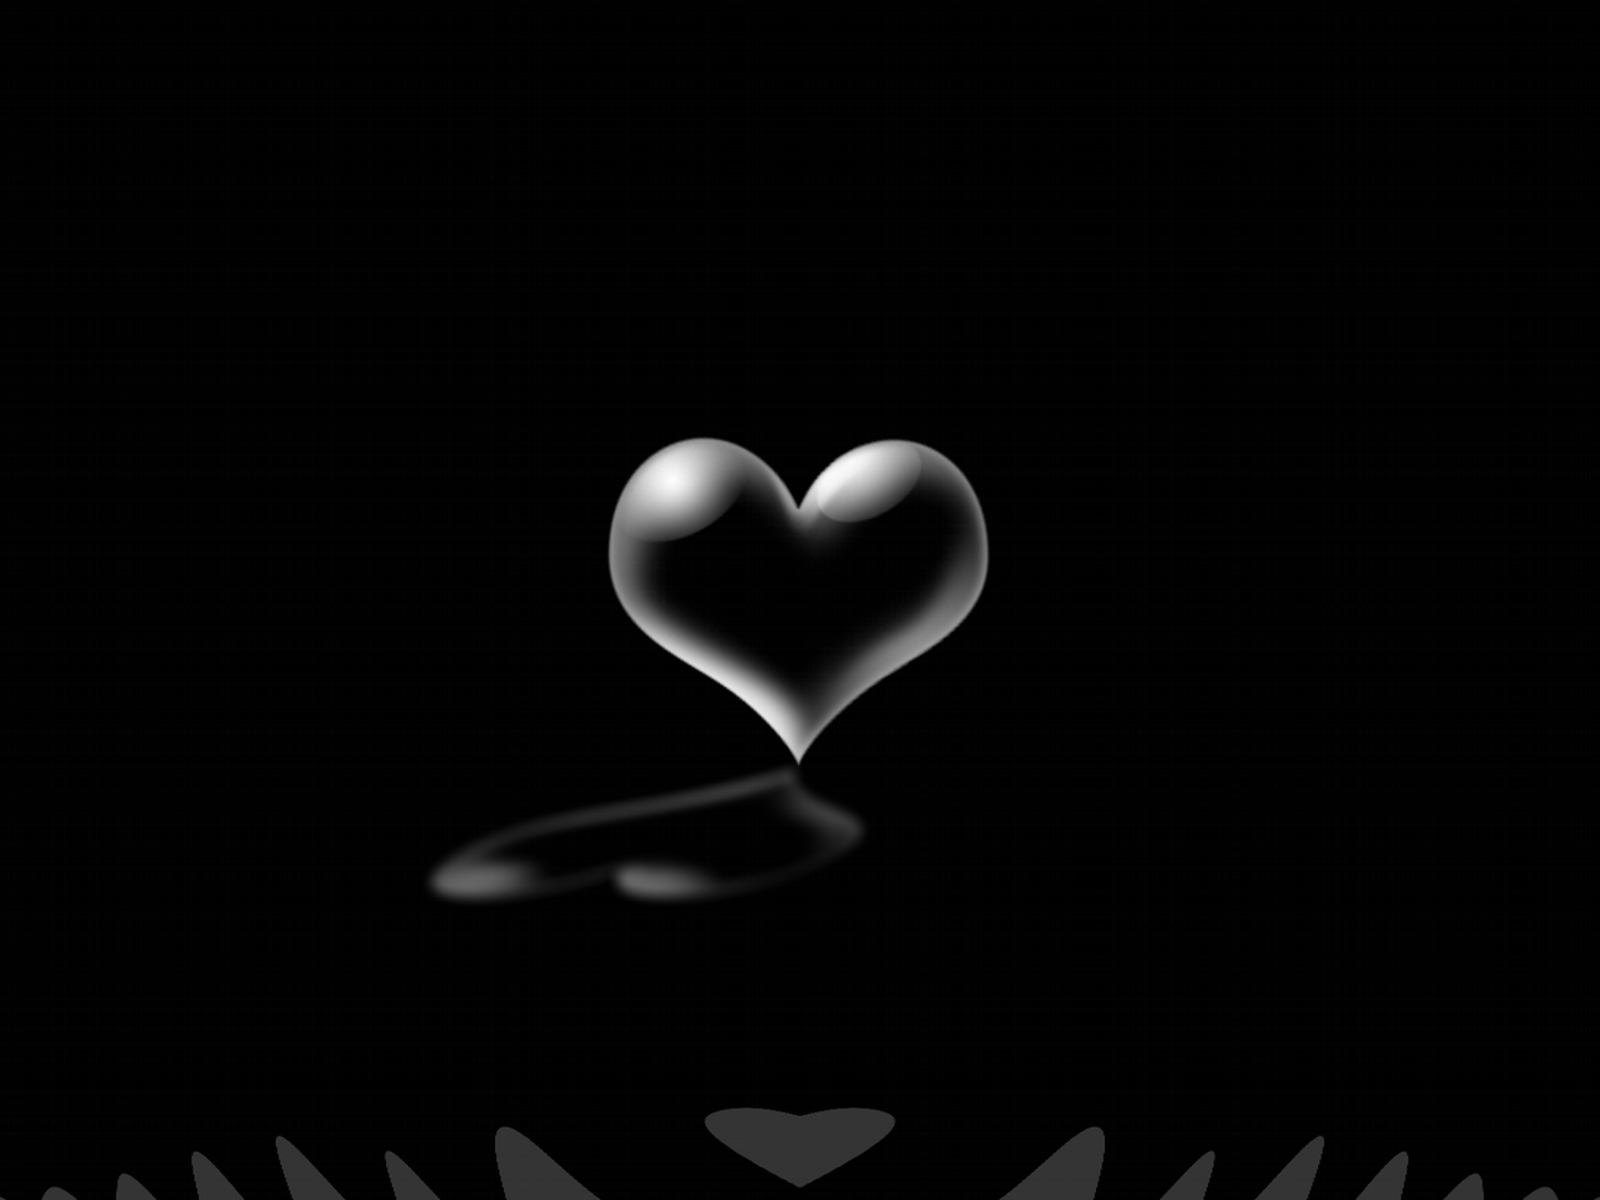 Black Heart Heart Wallpaper Dark Heart Black Wallpaper